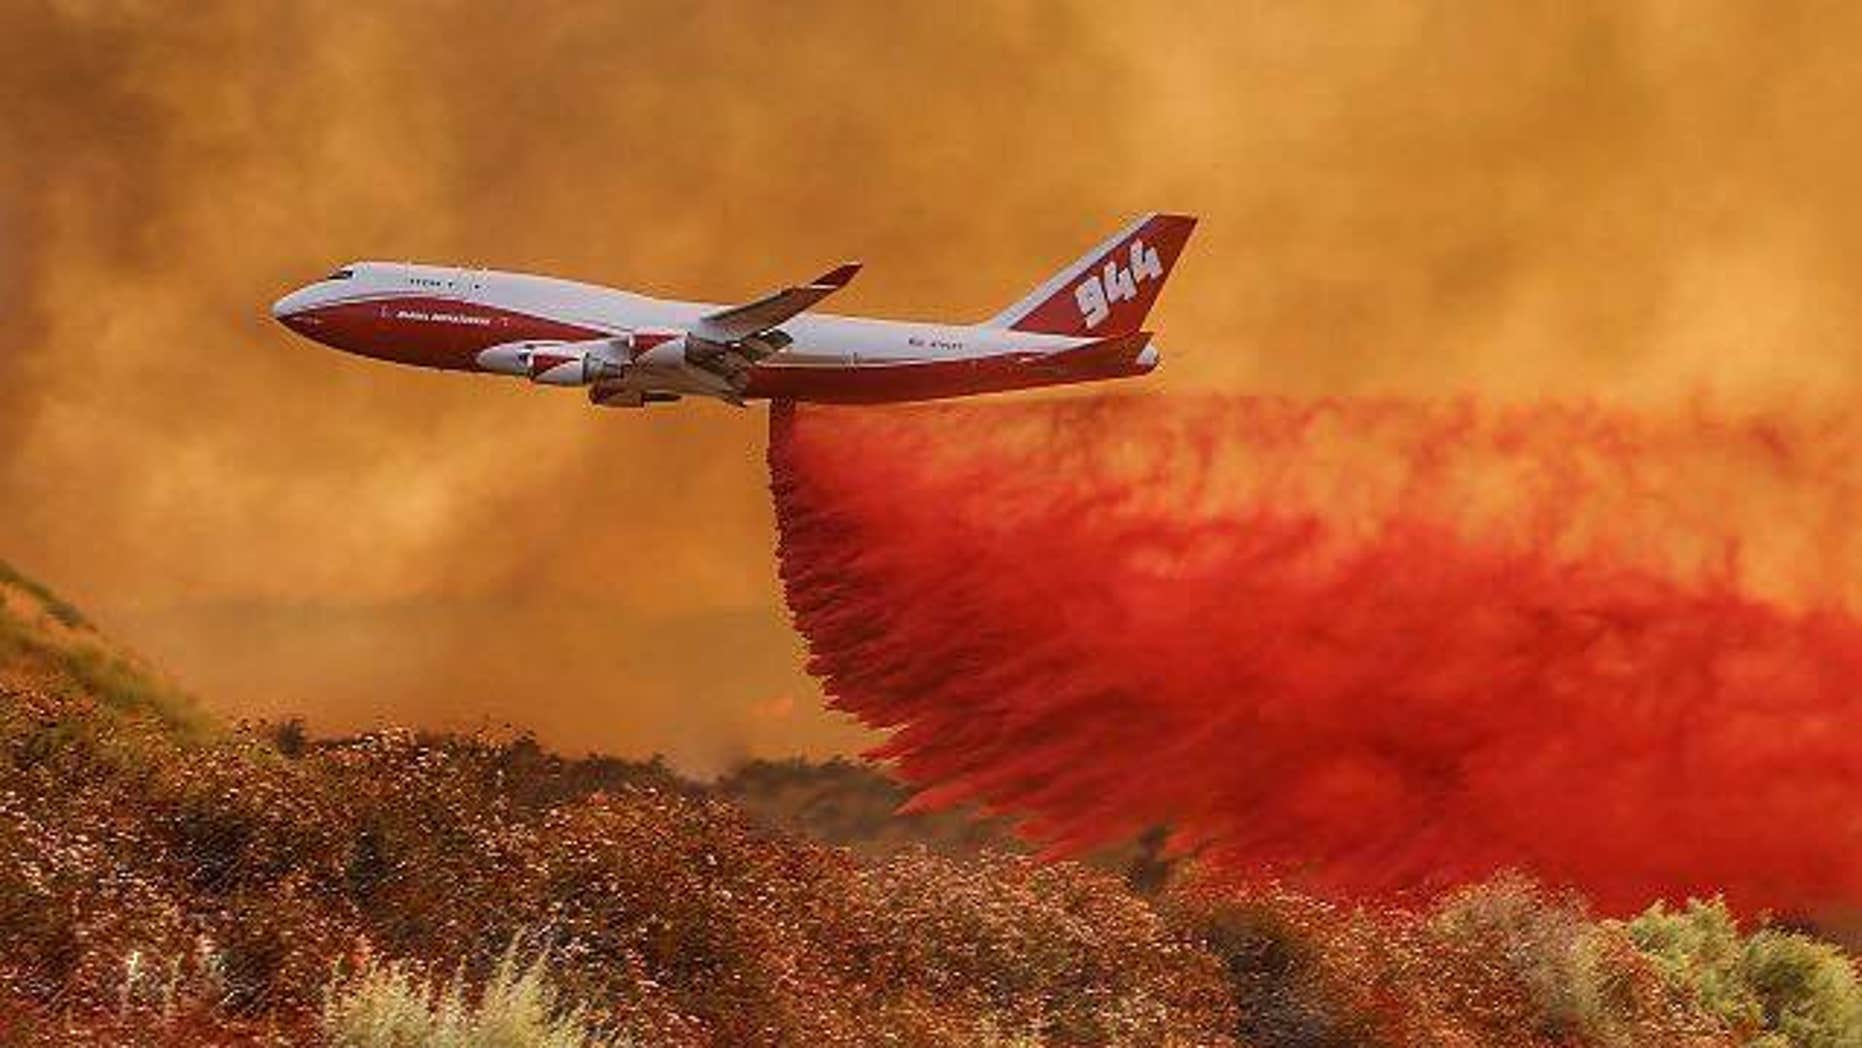 The Global SuperTanker, a modified Boeing 747-400, can carry 18,000 gallons of fire retardant. (Facebook)